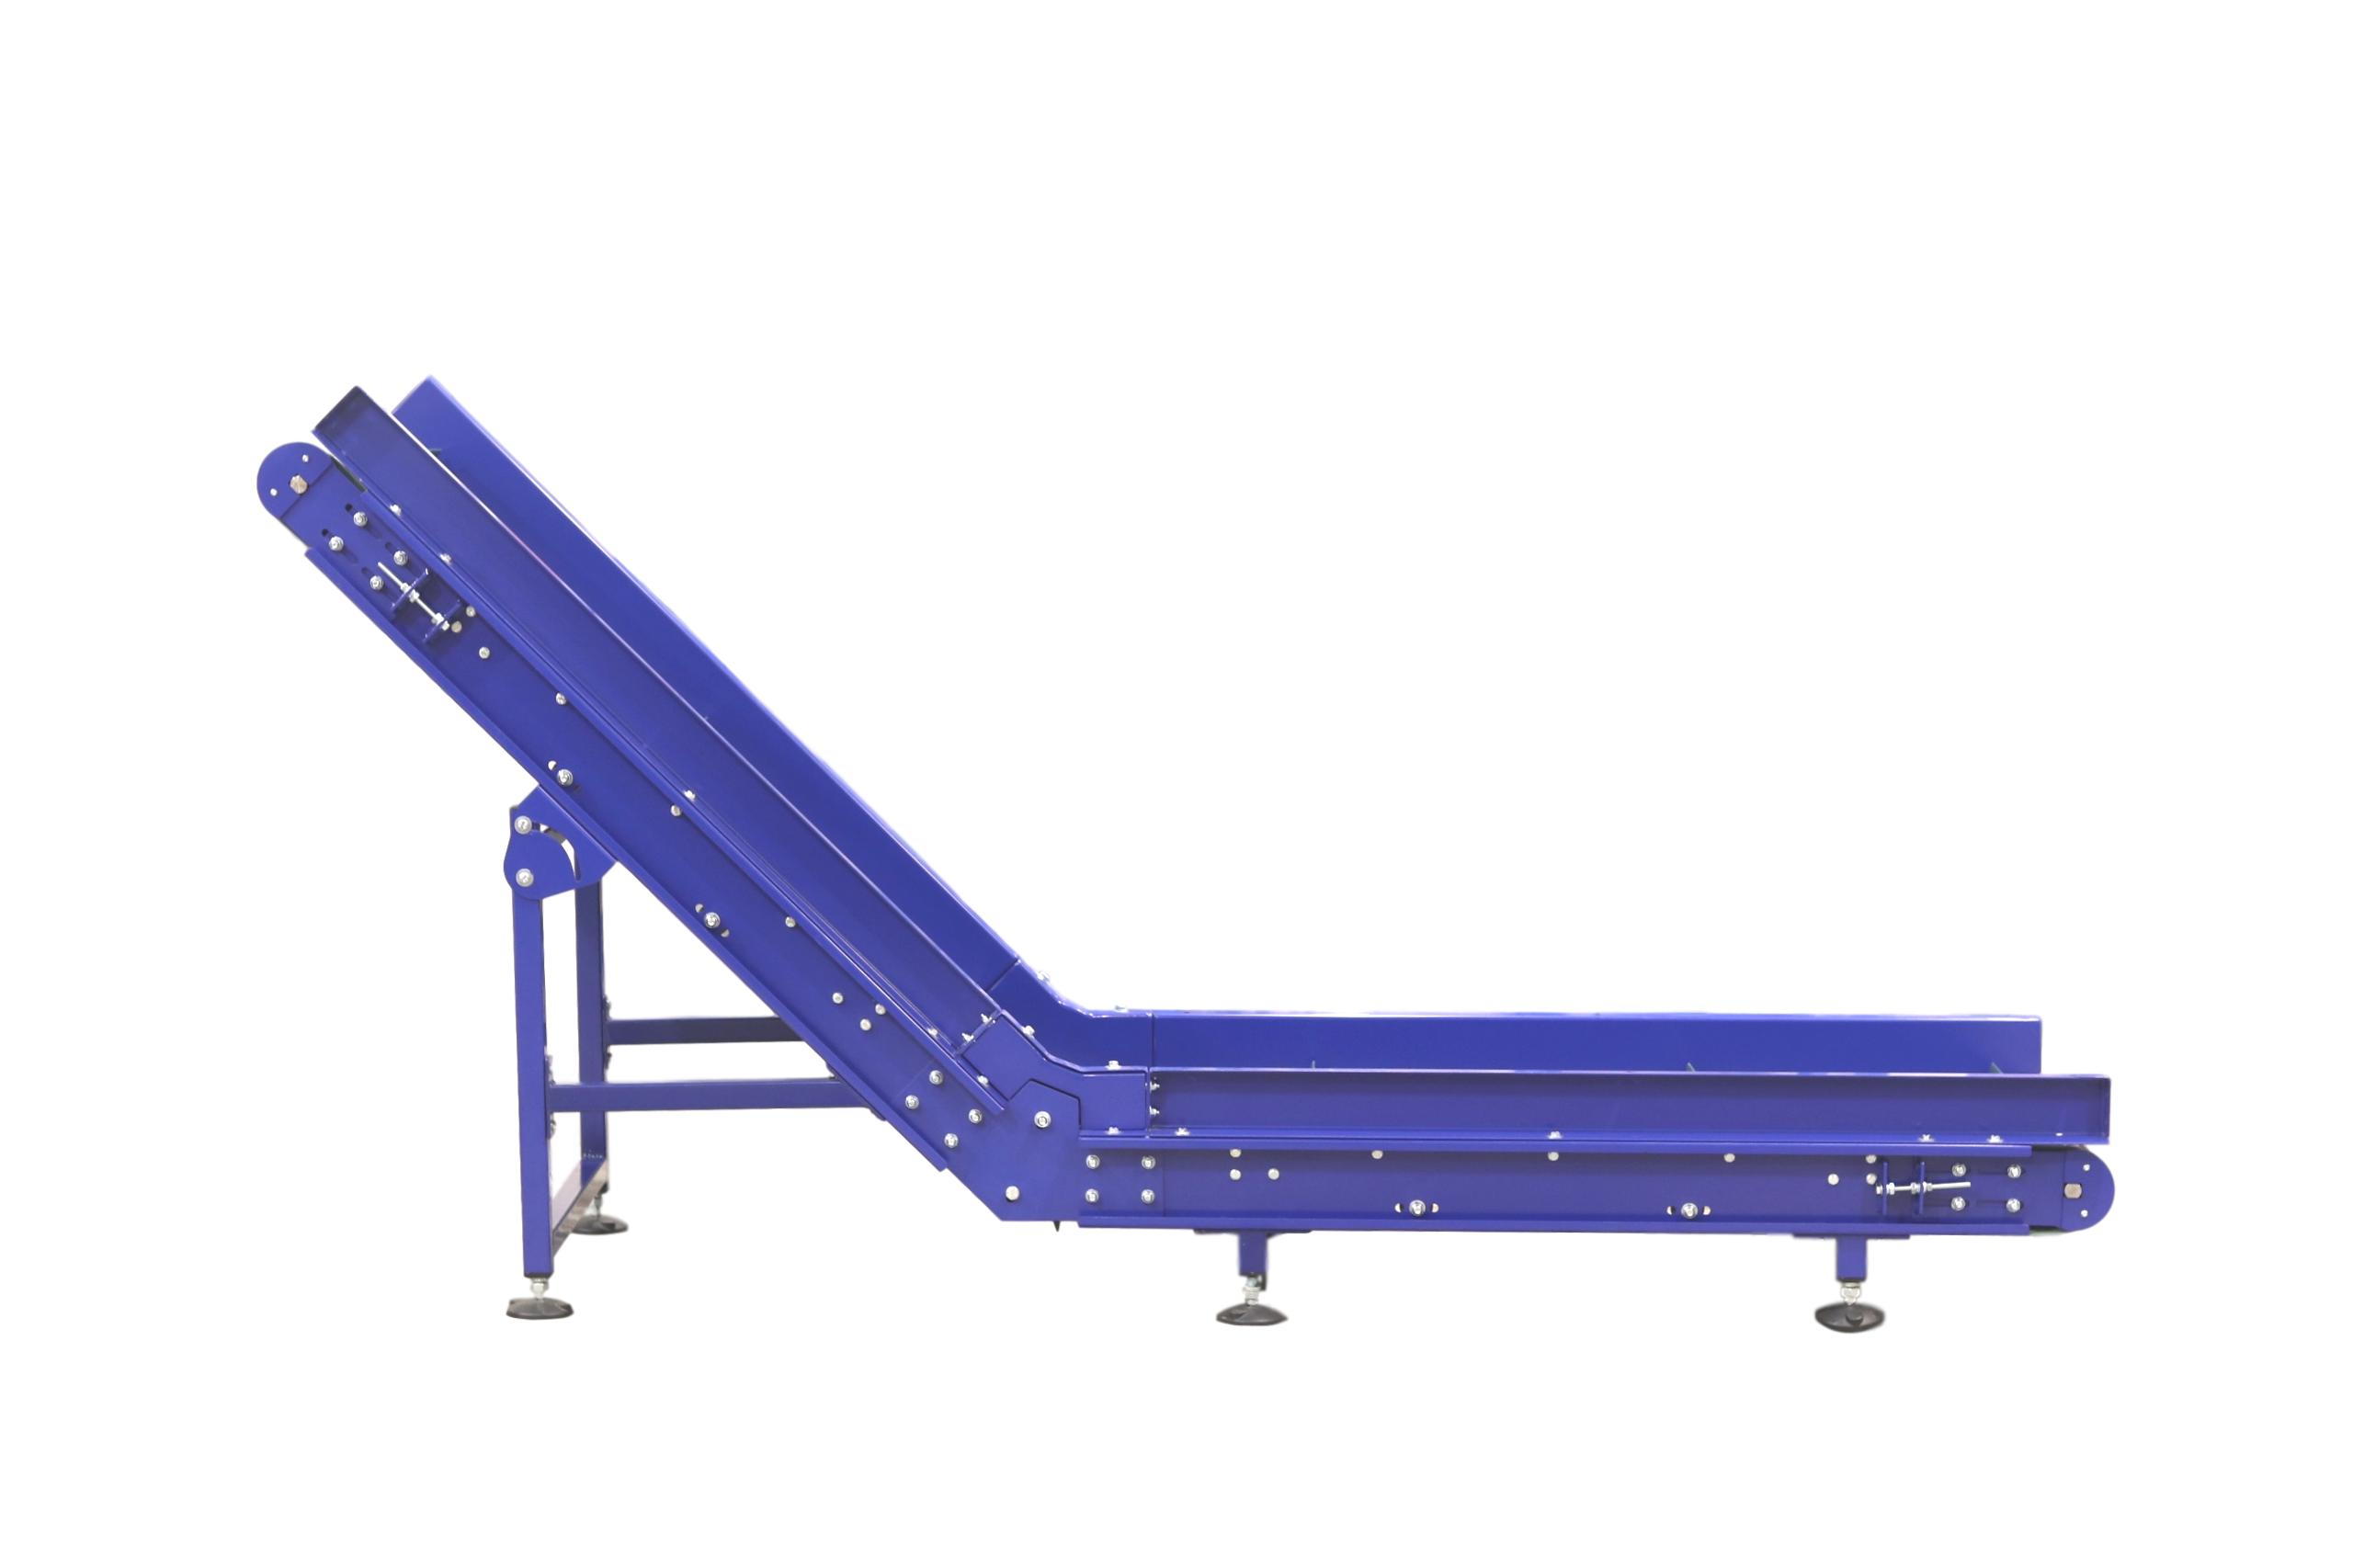 Inclined Infeed conveyor swan conveyor out feed conveyor with flighted belting cleated belt